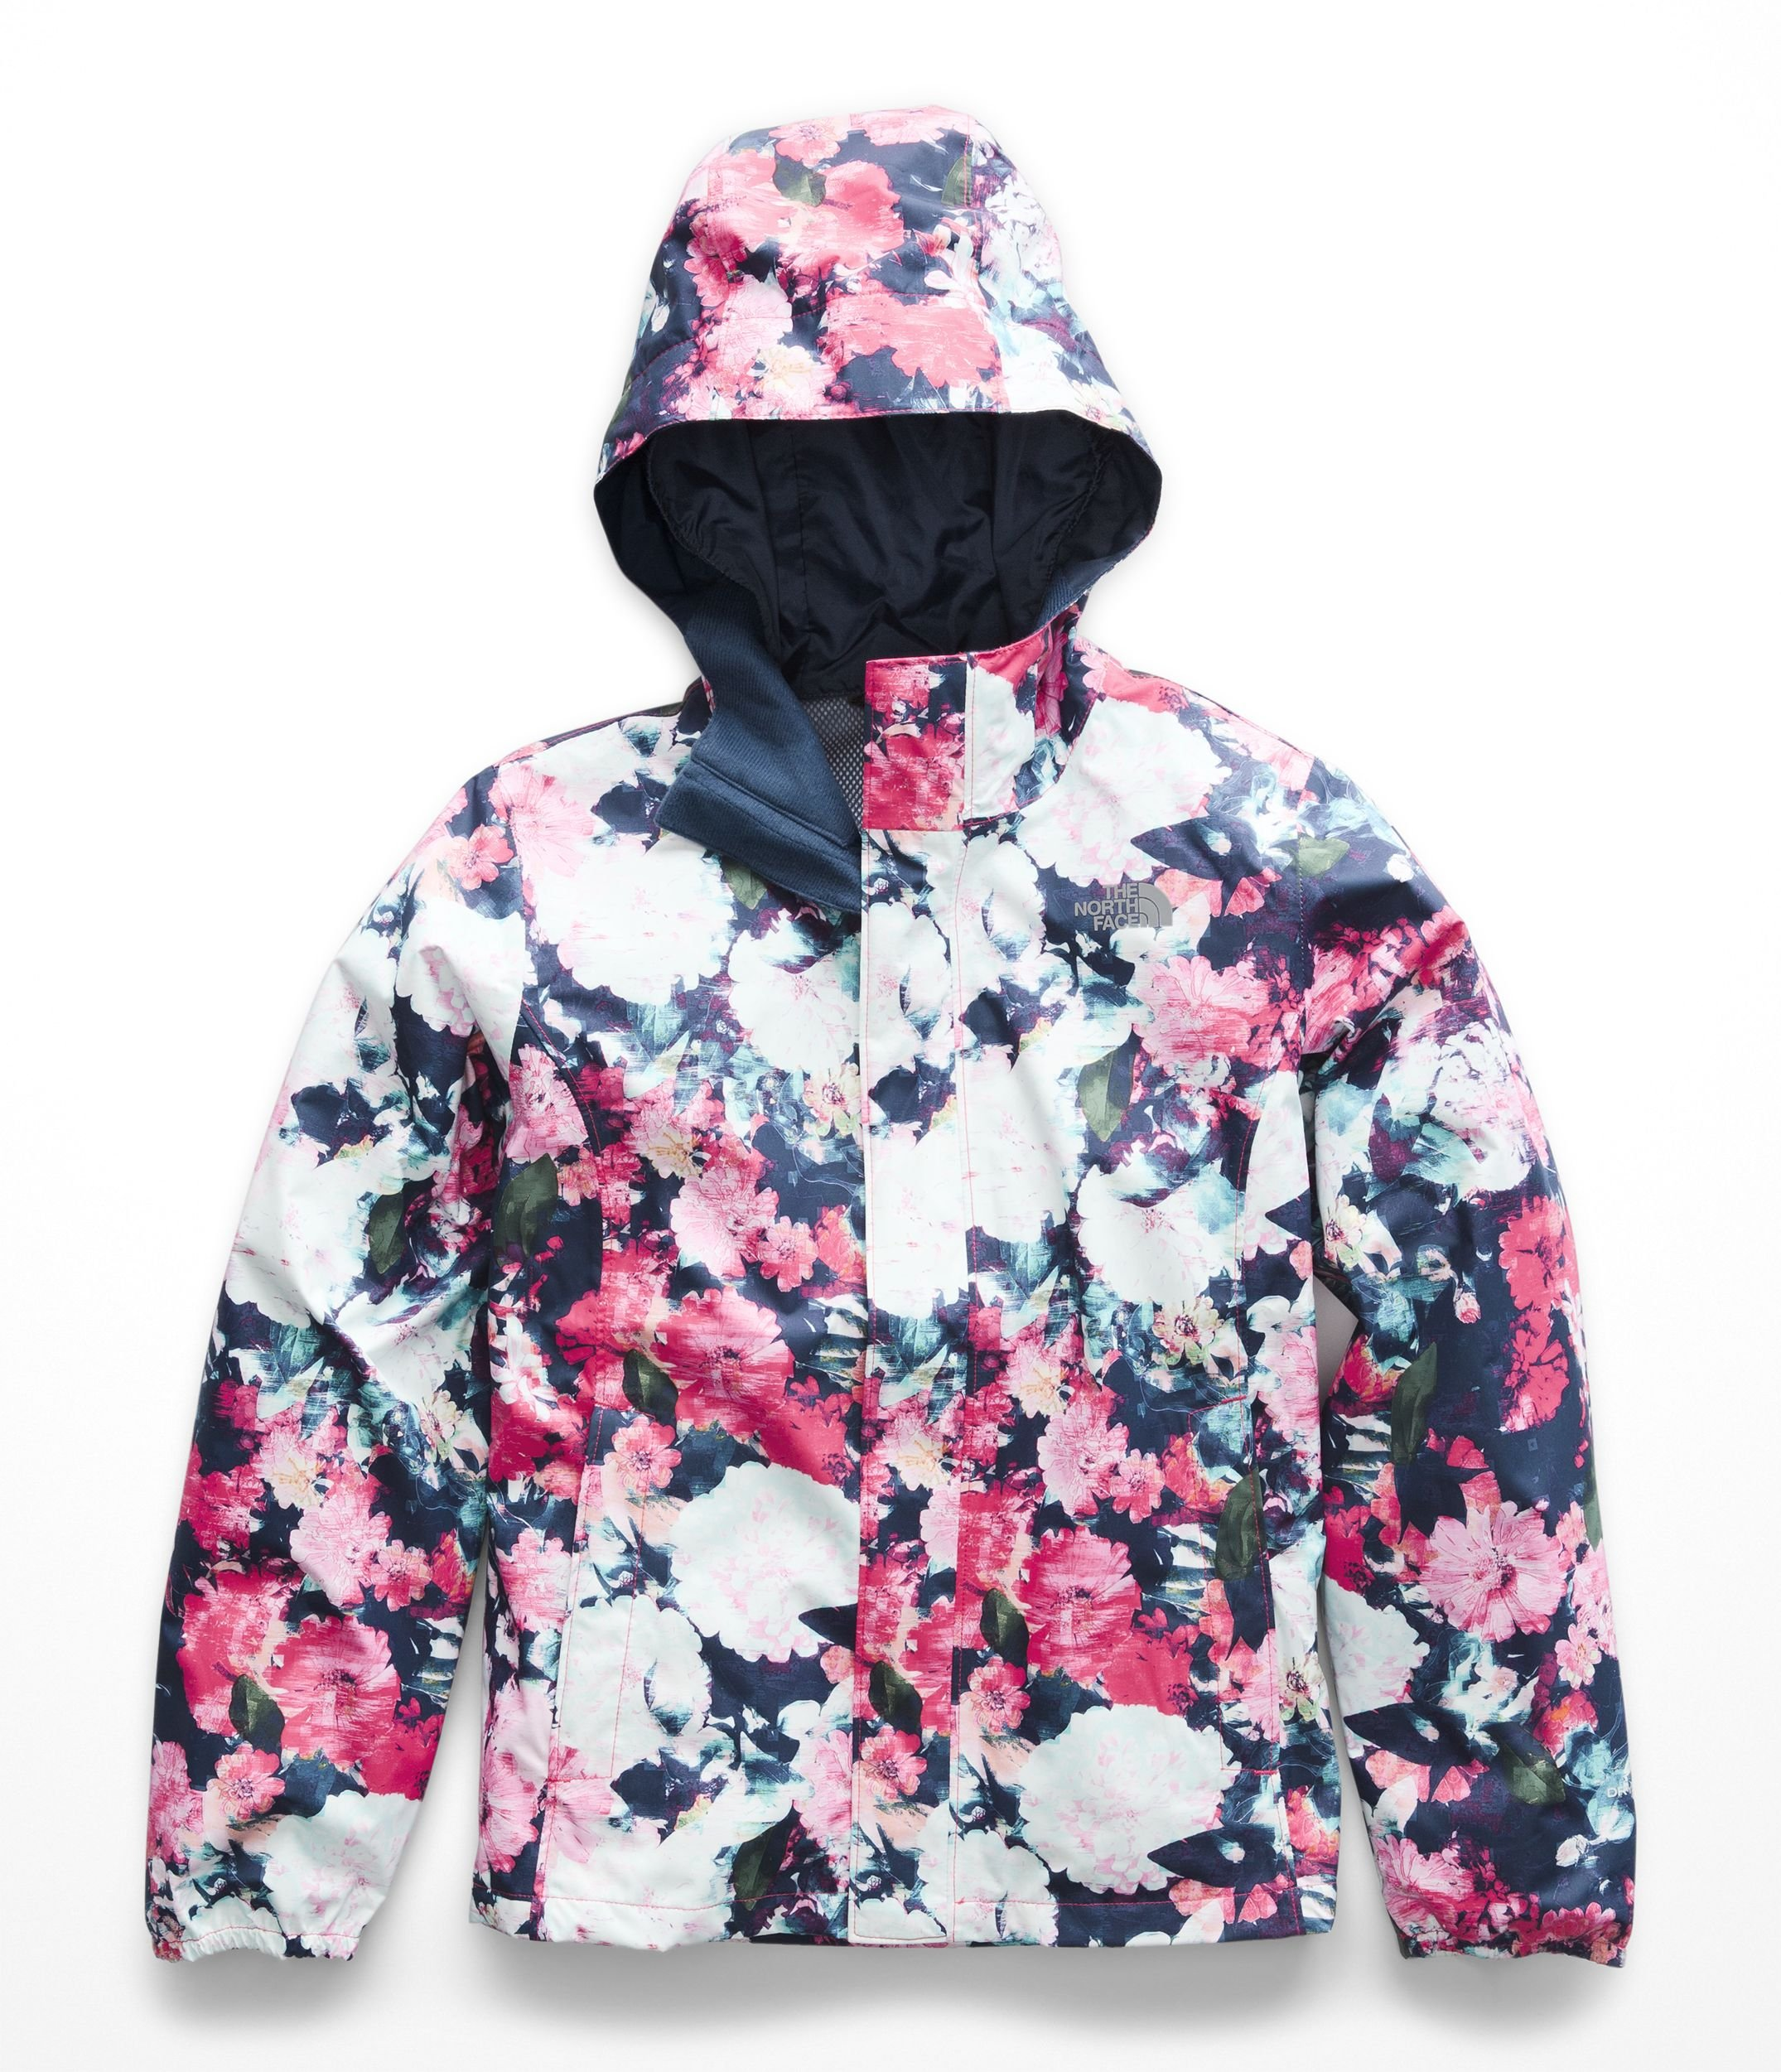 The North Face Girls Resolve Reflective Jacket - Atomic Pink Digi Floral Print - M by The North Face